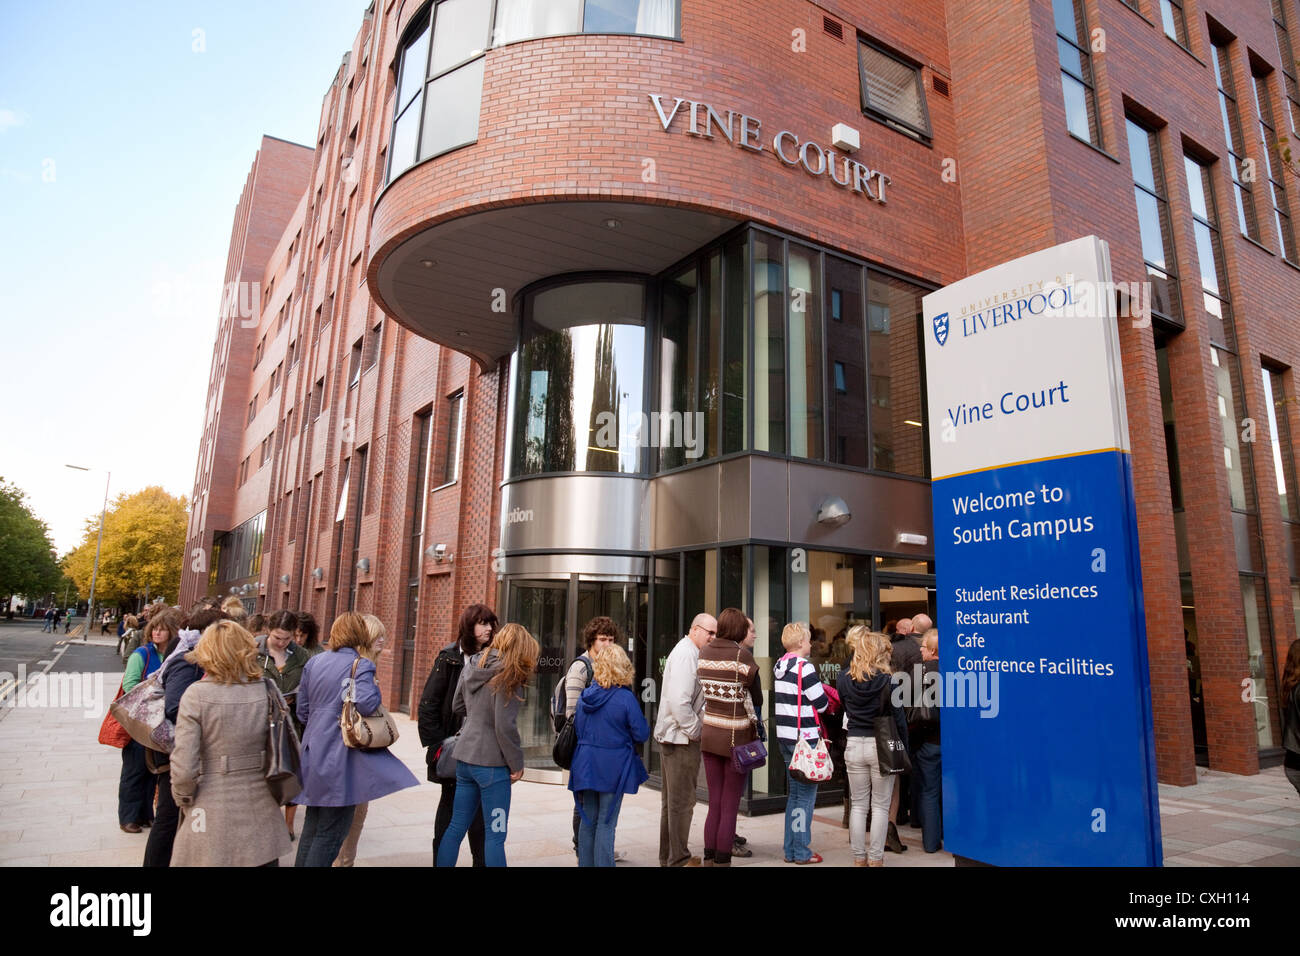 Visitors on a uni open day to Vine Court, student accommodation at University of Liverpool, UK - Stock Image